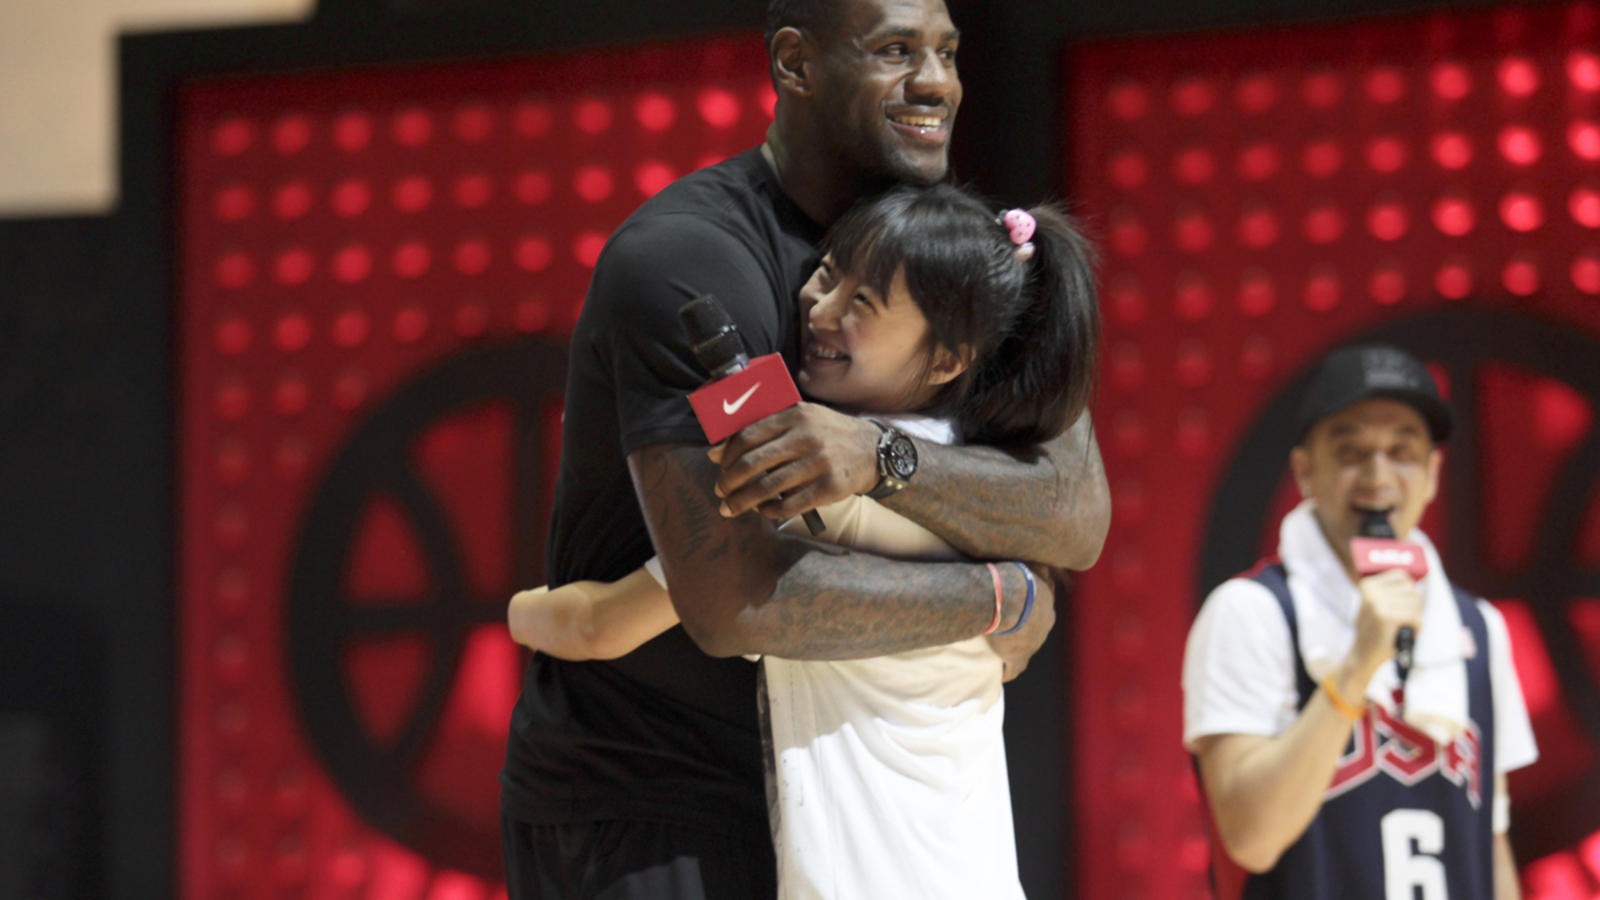 LeBron_BJ_fan_hug